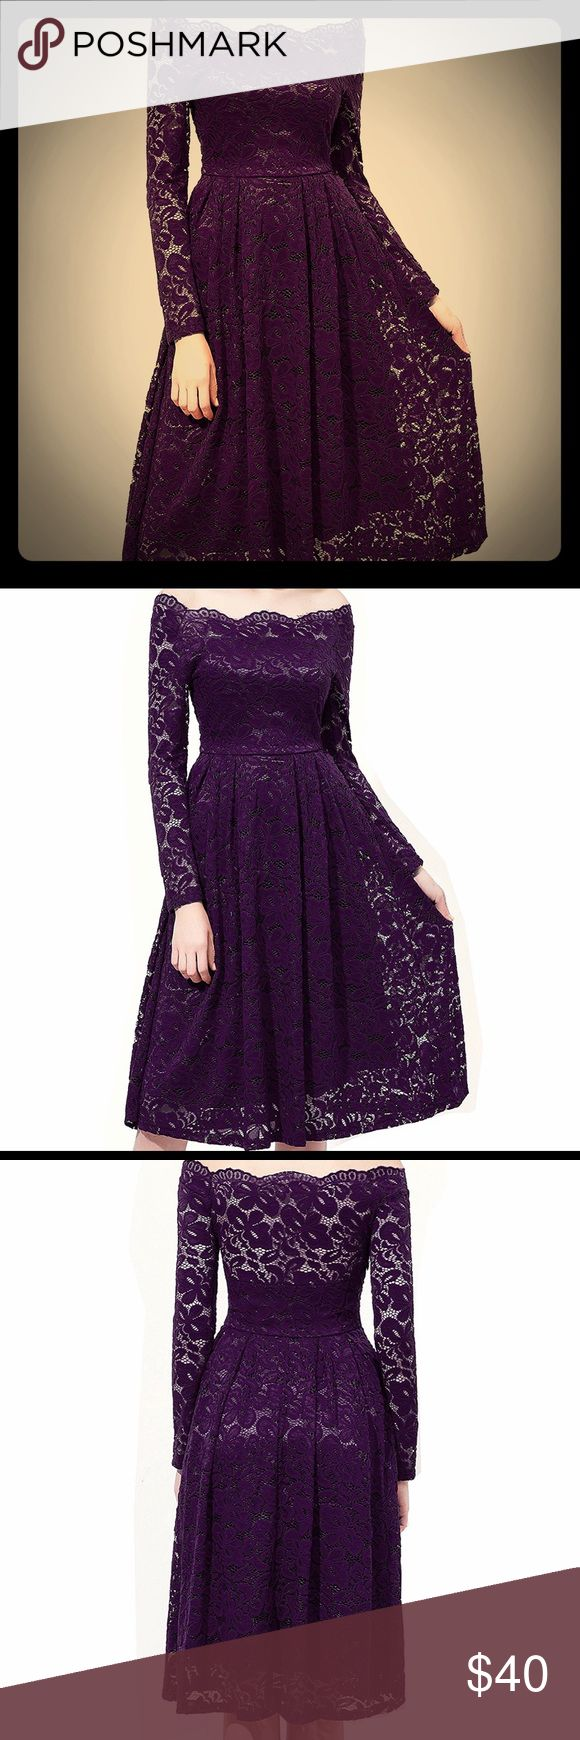 Dark Purple Lace long sleeve dress formal NWT Pretty in purple! Dark Purple / deep eggplant  color Lace long sleeve plus size dress- off the shoulder scalloped bateau neck line- retro vintage look on trend- great for formal or semi-formal - perfect party dress, wedding dress, church dress, pinup girl, rockabilly formal, burlesque, date nite etc retro cocktail dress, evening dress, tea length dress- mother of the bride, bridesmaid- side hidden zipper- bought as wedding guest- too late to…